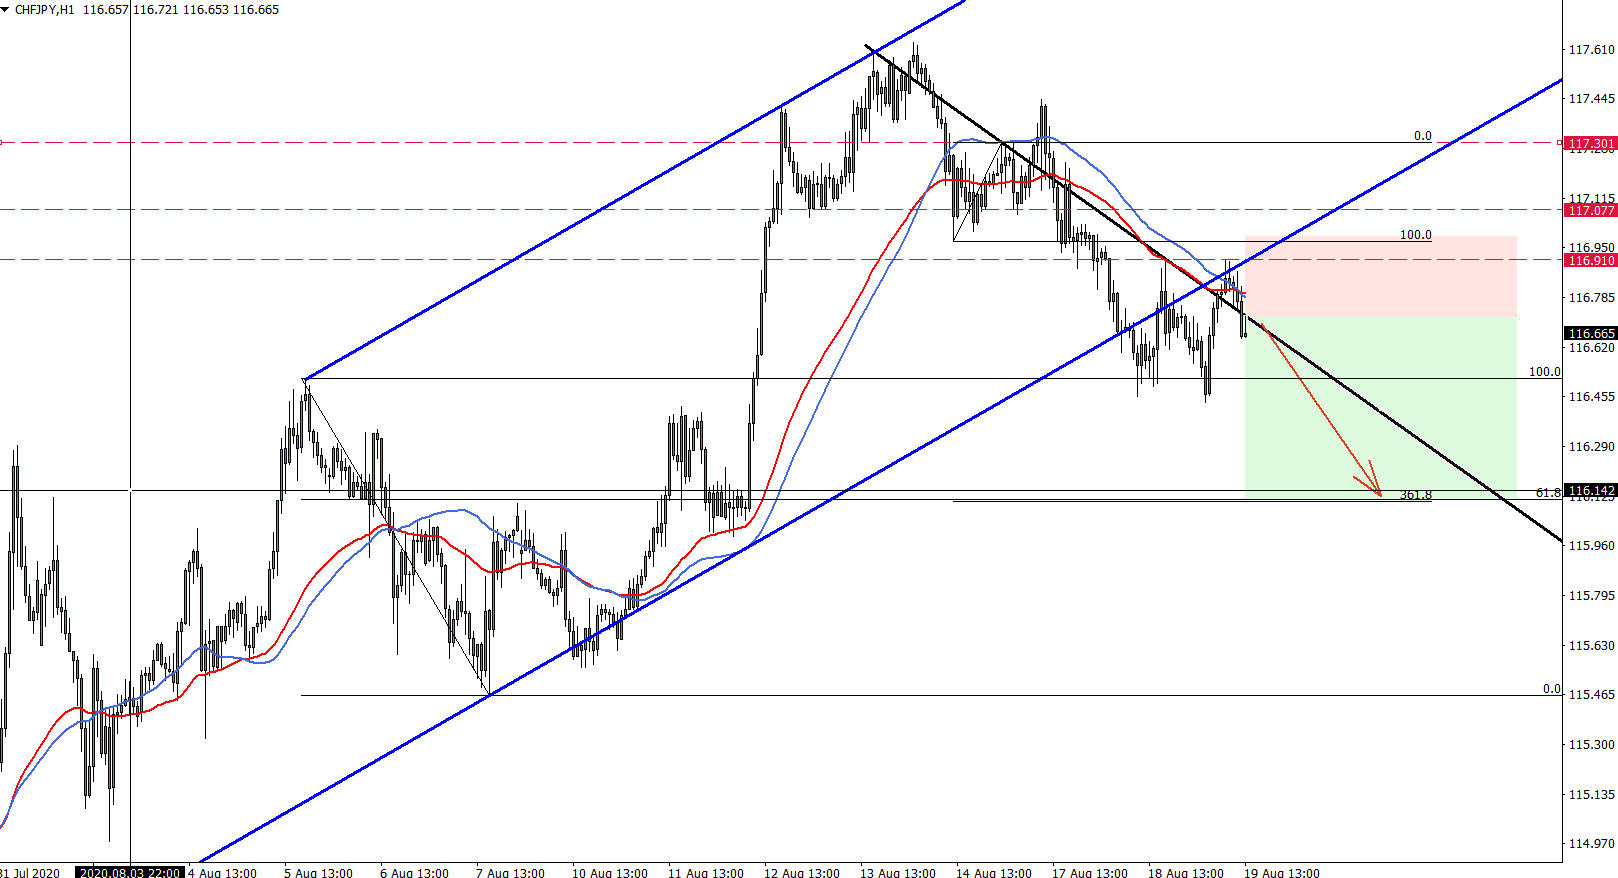 CHFJPY hourly chart August 19th 2020